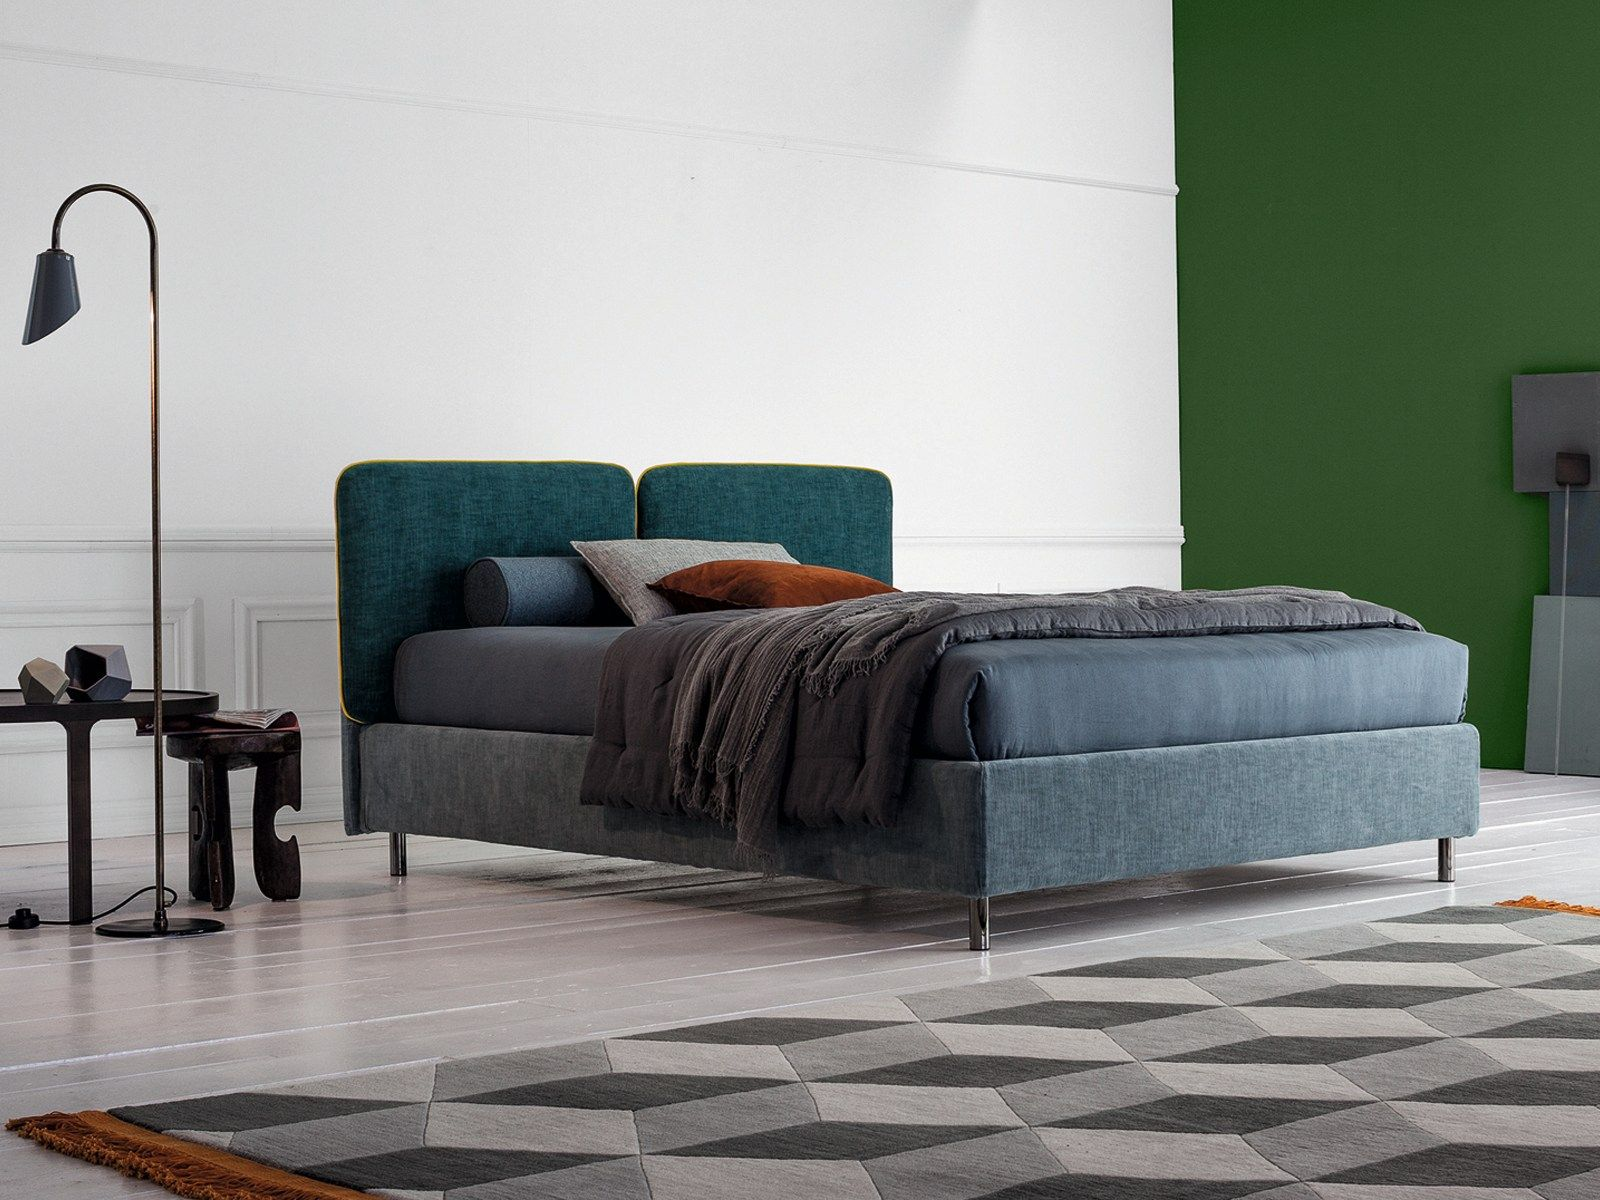 FRICK, IL NUOVO LETTO TESSILE TWILS | Bedrooms - Zona Notte ...